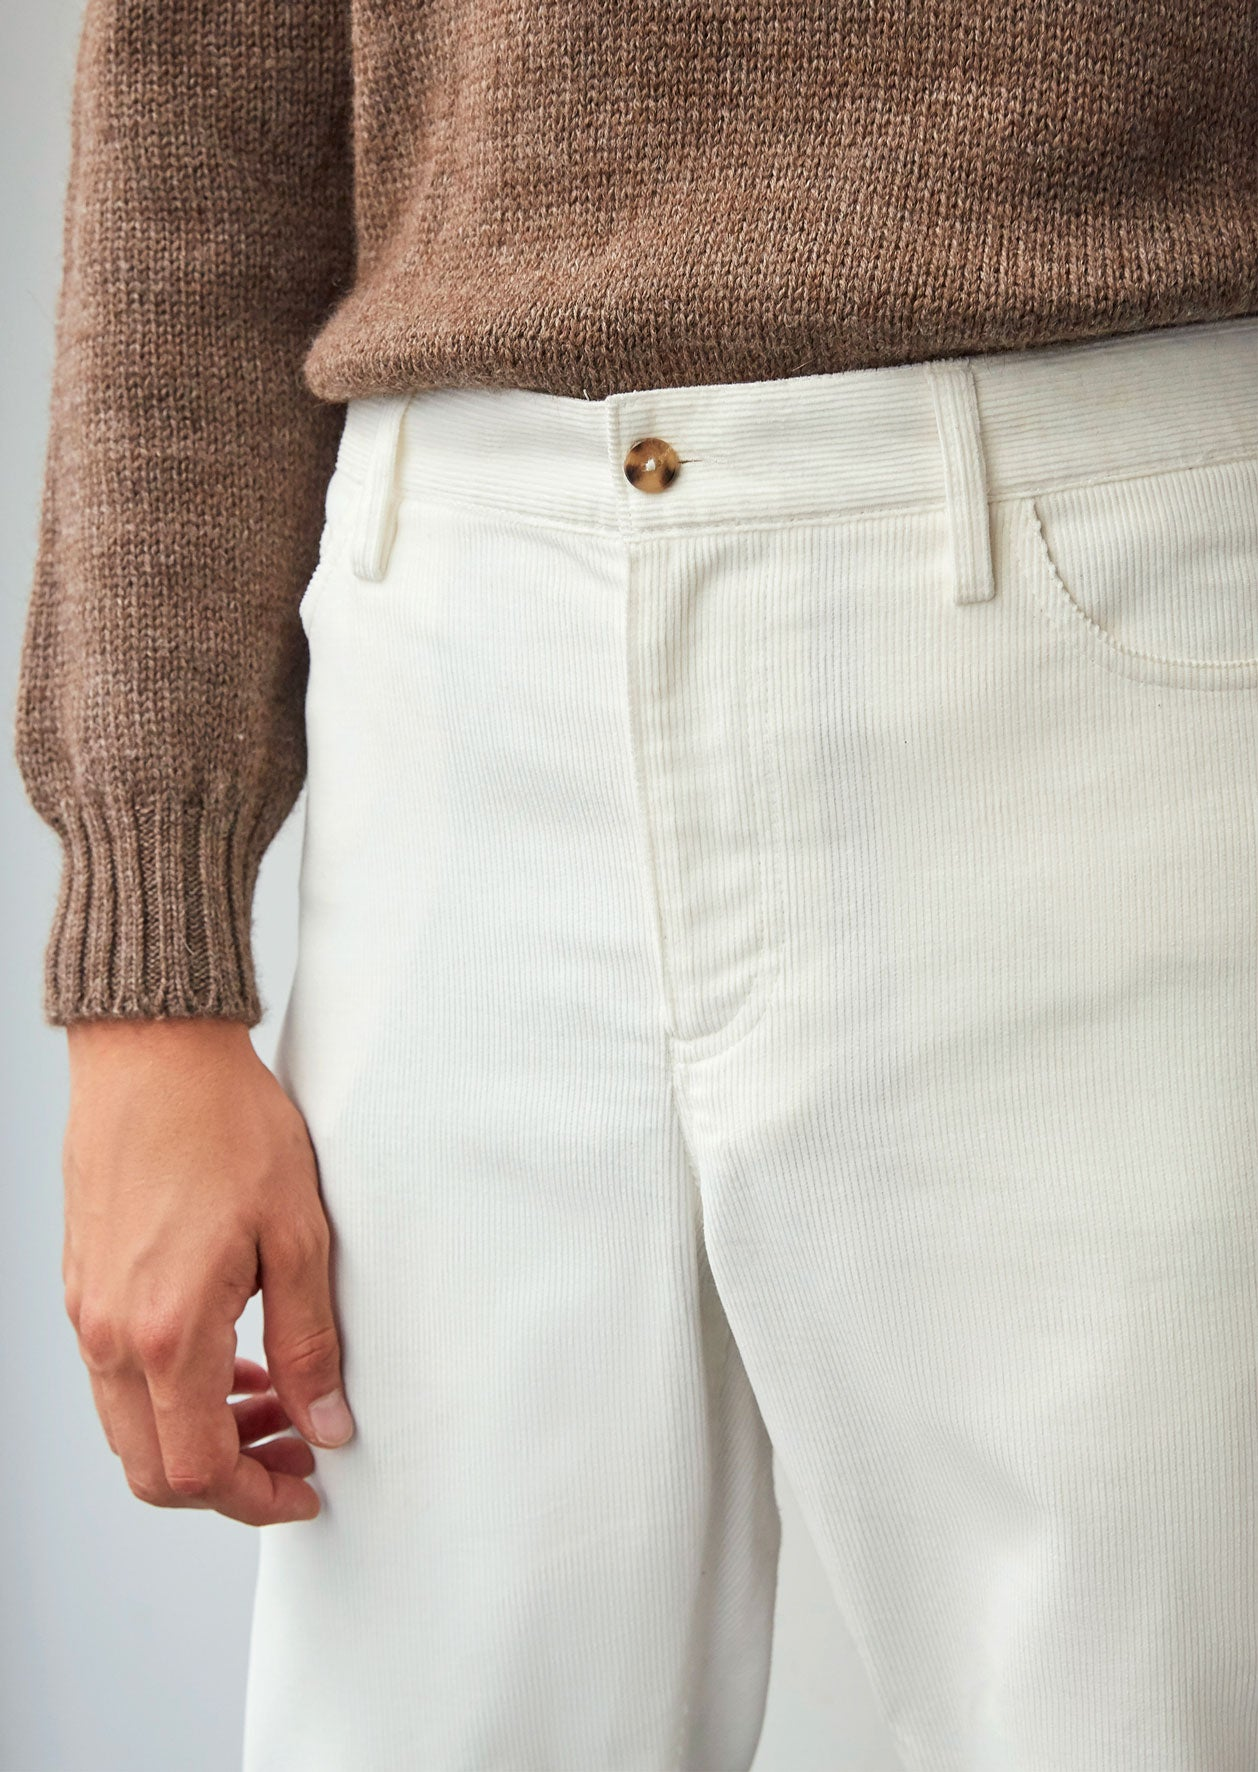 5 Pocket trousers - English medium wale corduroy - White - De Bonne Facture